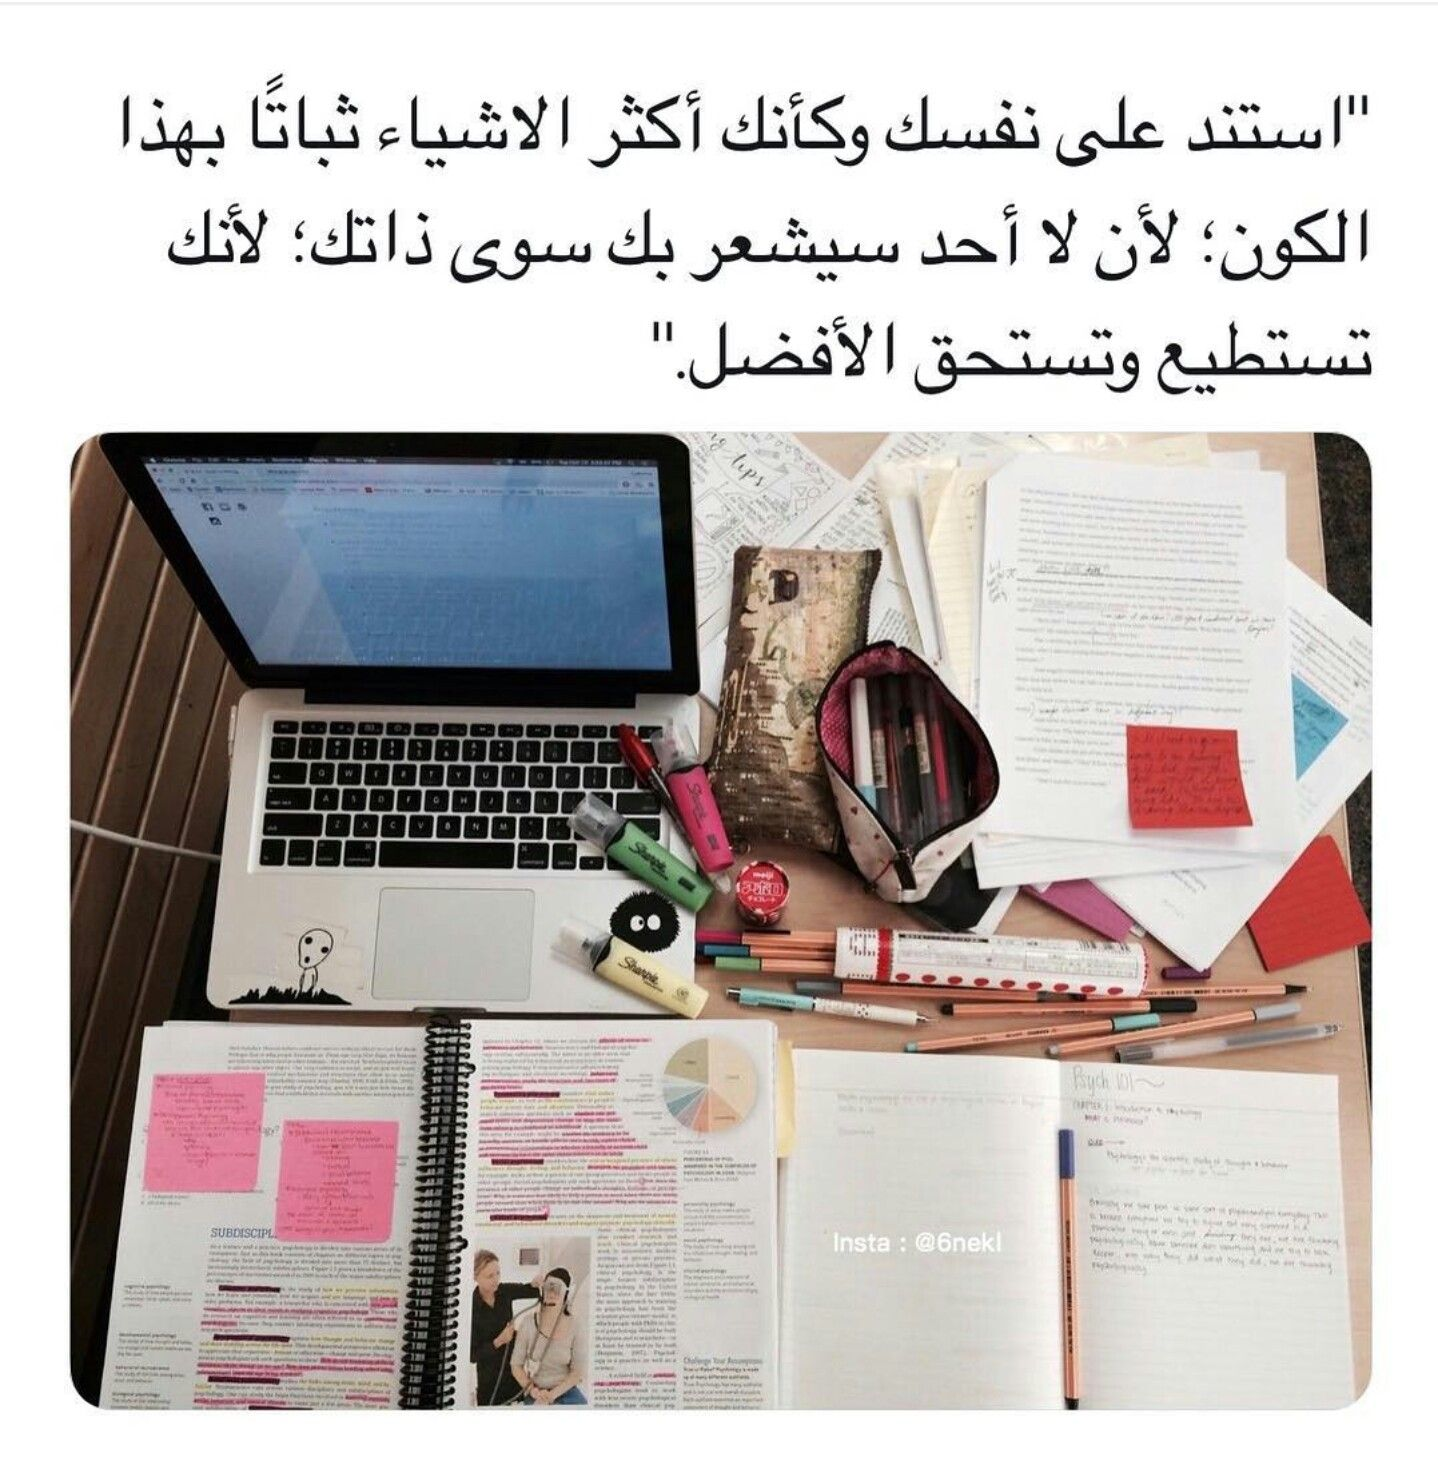 Pin By La Reina Aya On نجاح Success Study Motivation Quotes Quotes For Book Lovers Study Quotes